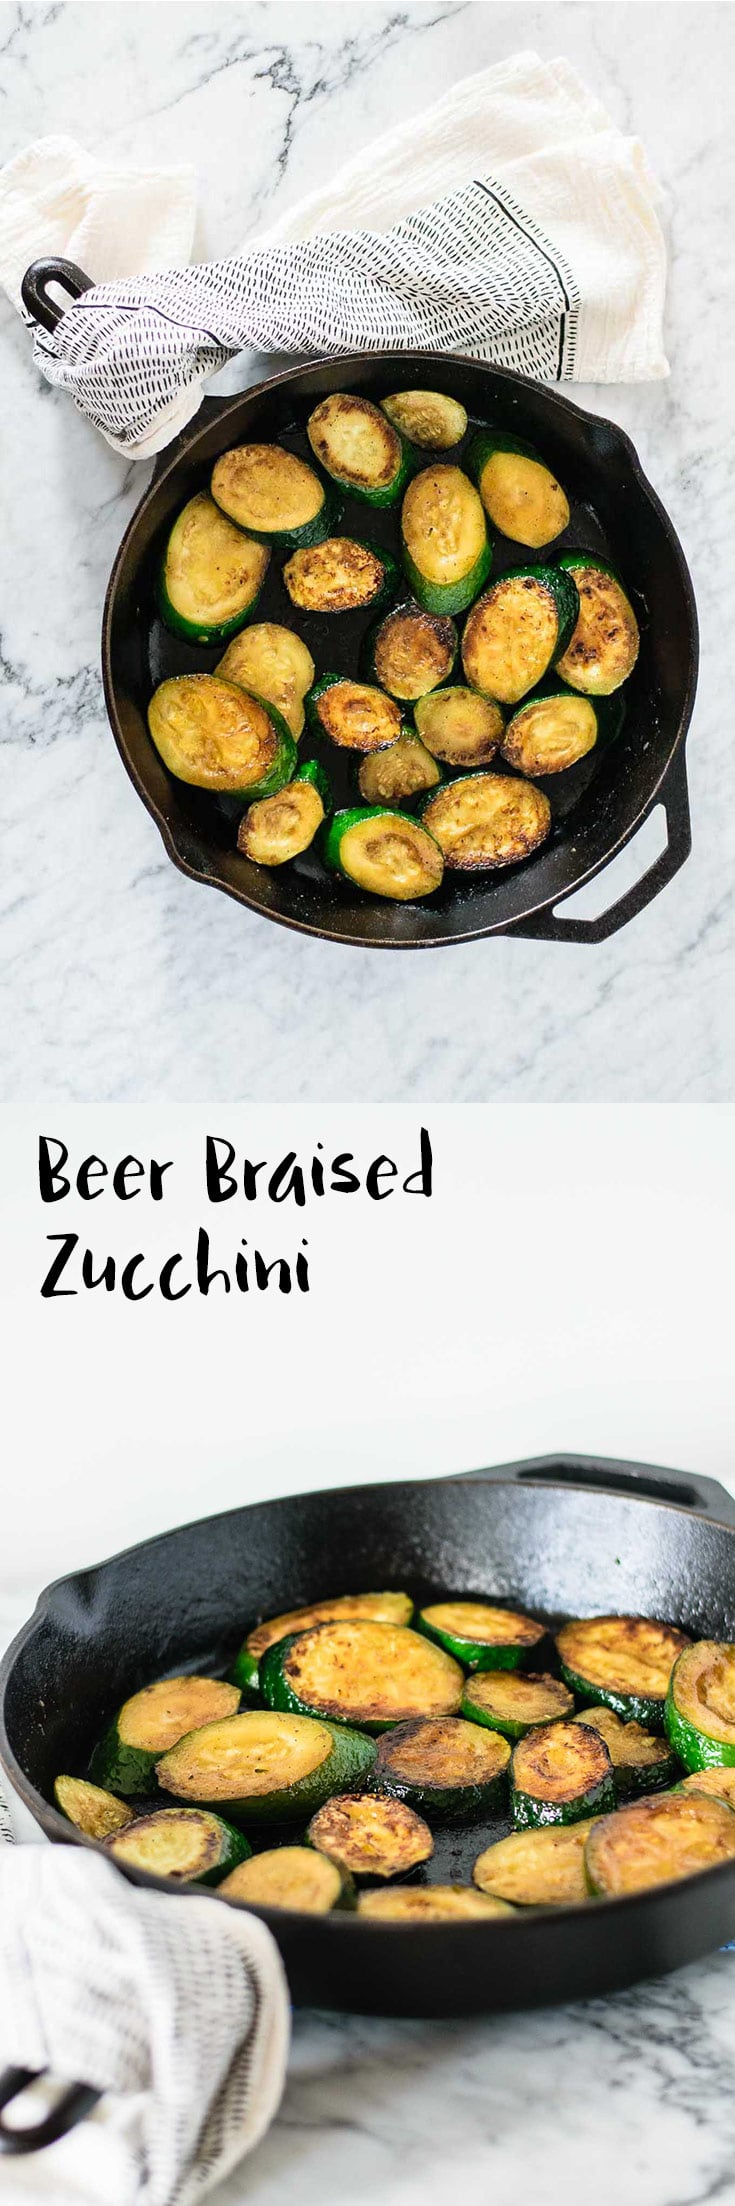 Beer braised zucchini is quick to make and delicious, only has 4 ingredients, and is the perfect accompaniment for so many summertime meals!   thecuriouschickpea.com